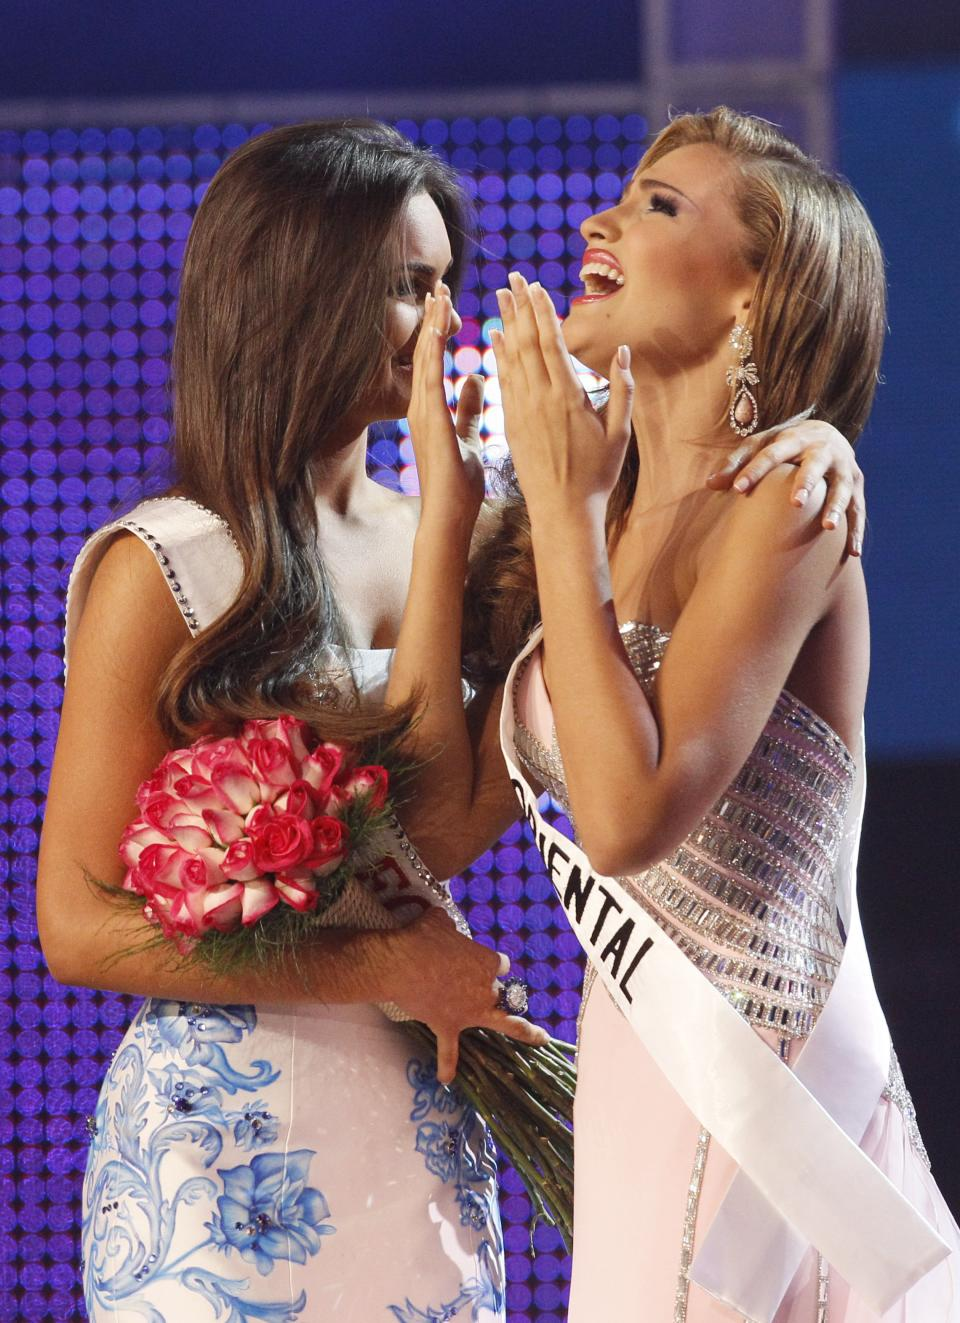 Migbelis Castellanos, right, reacts after being selected as Miss Venezuela 2013 during the beauty pageant in Caracas, Venezuela, Thursday, Oct. 10, 2013. (AP Photo/Ariana Cubillos)